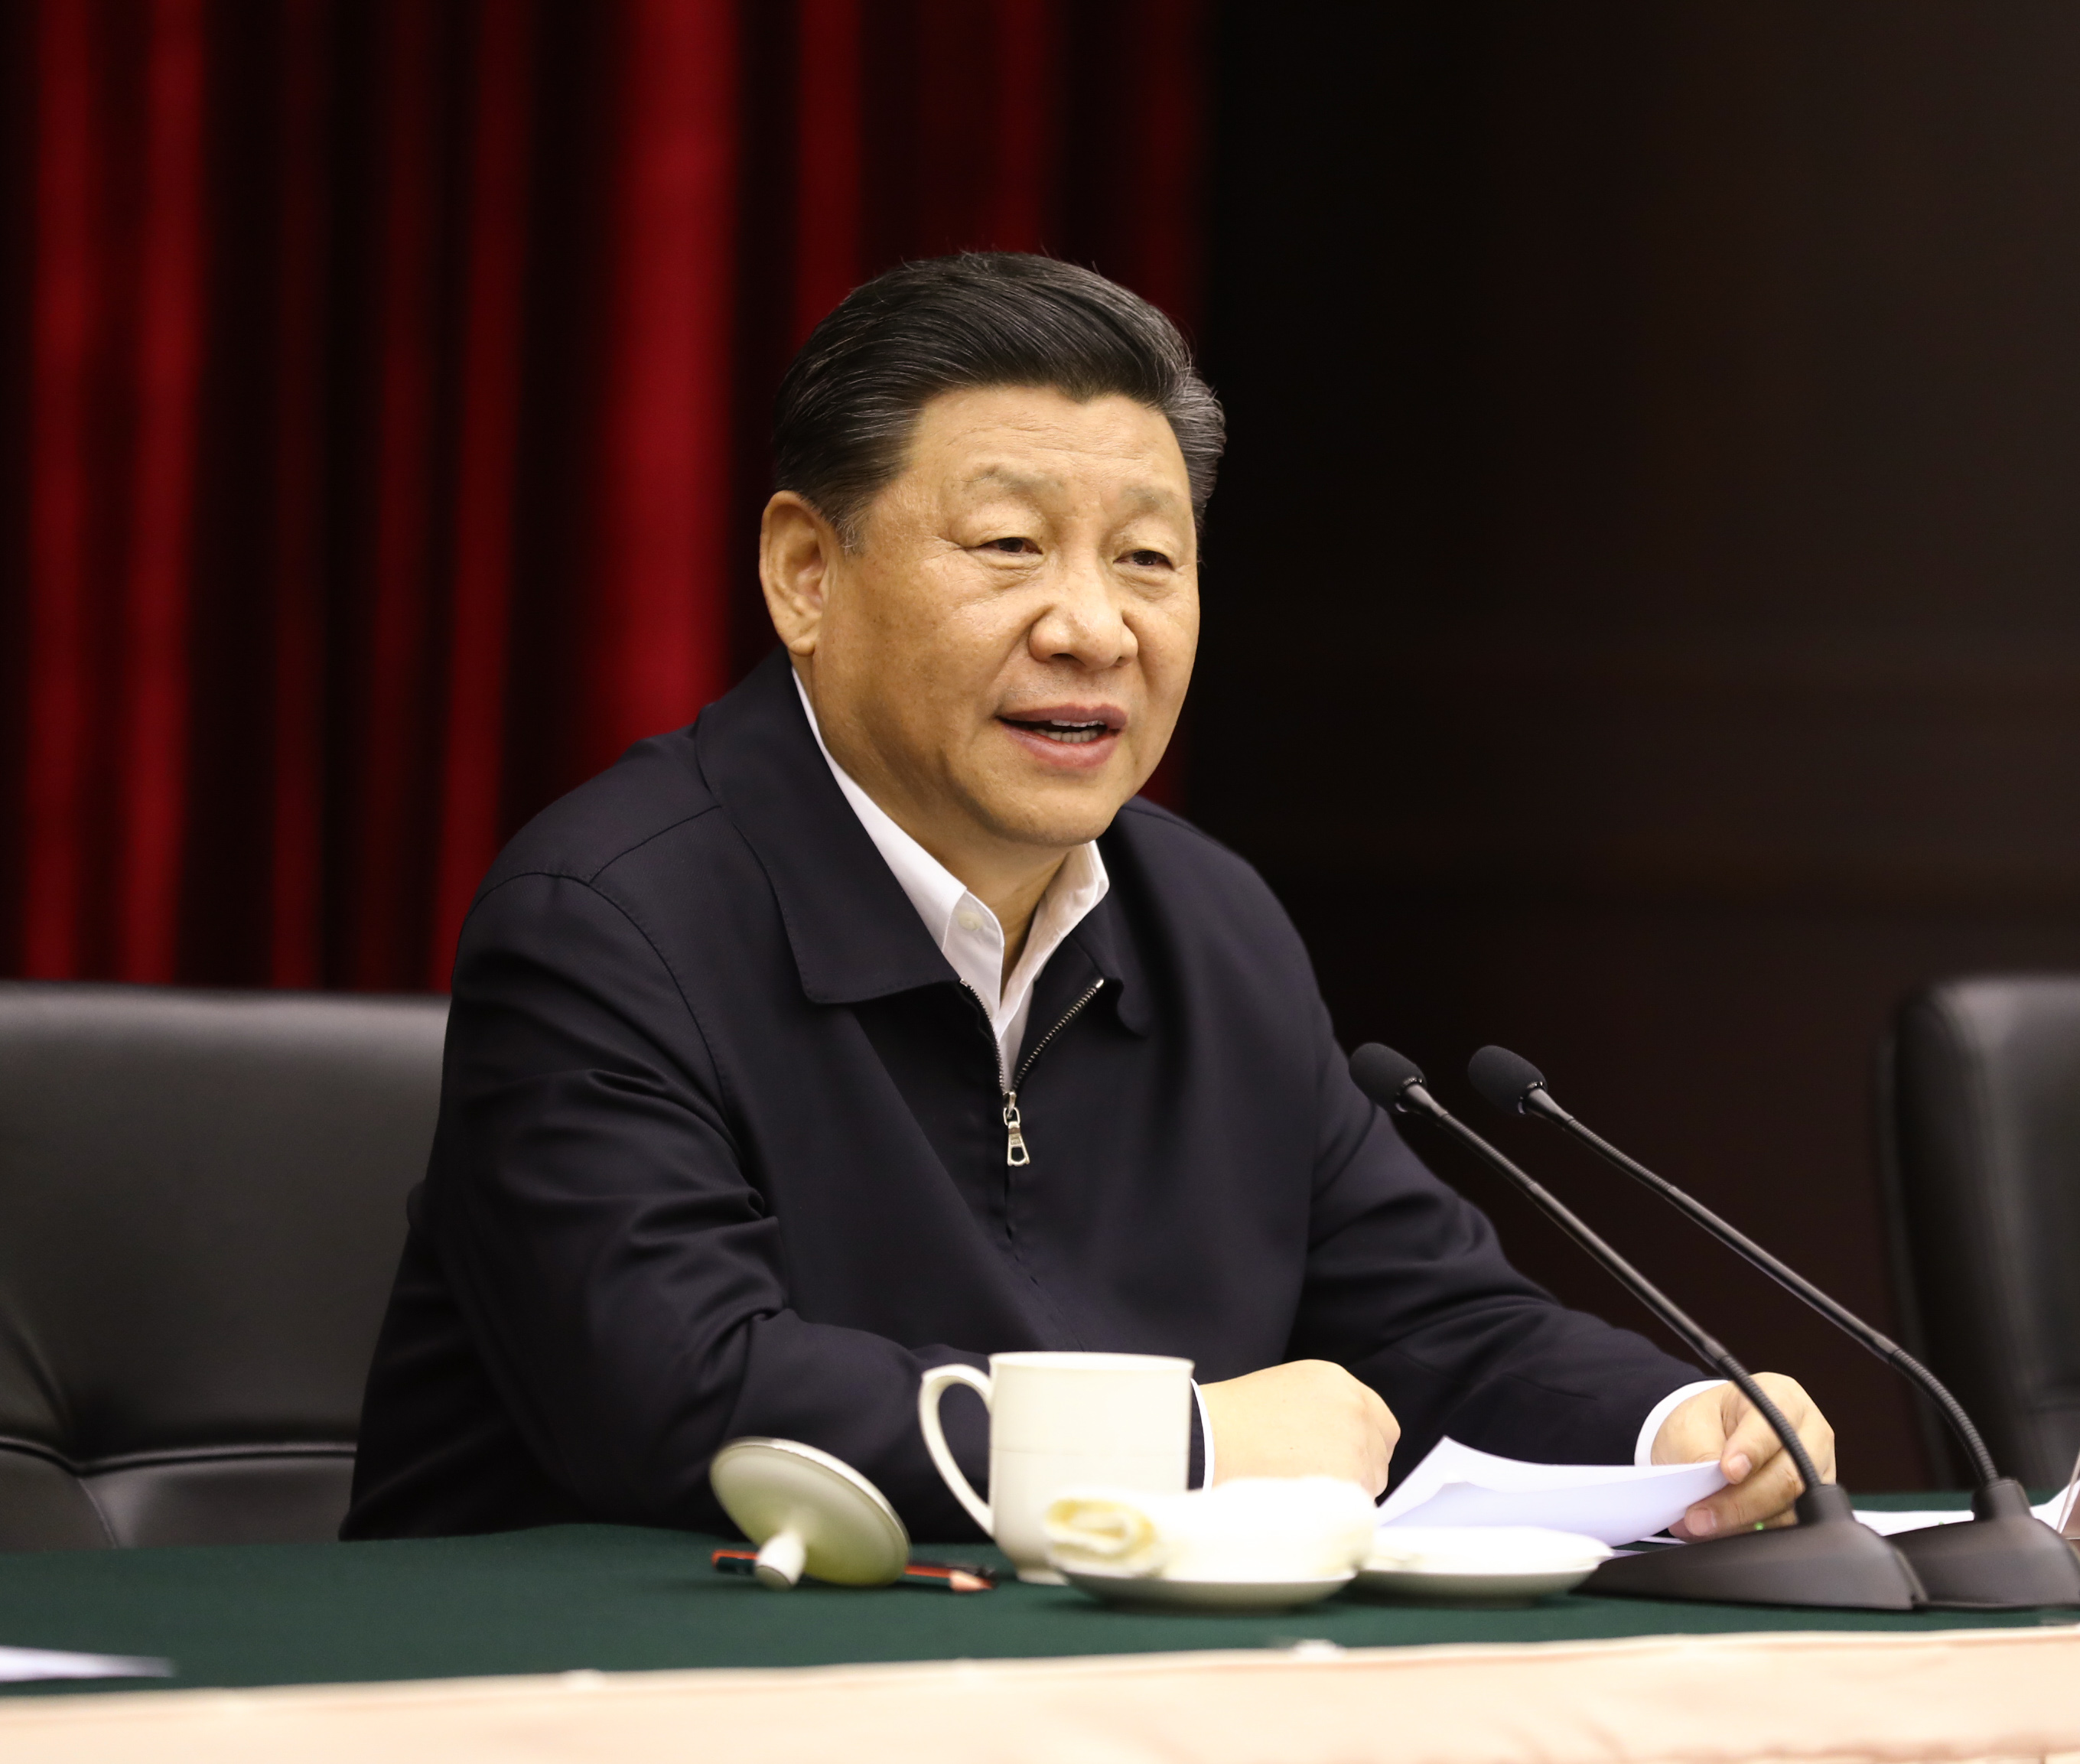 Xi chairs symposium on poverty alleviation in Chongqing